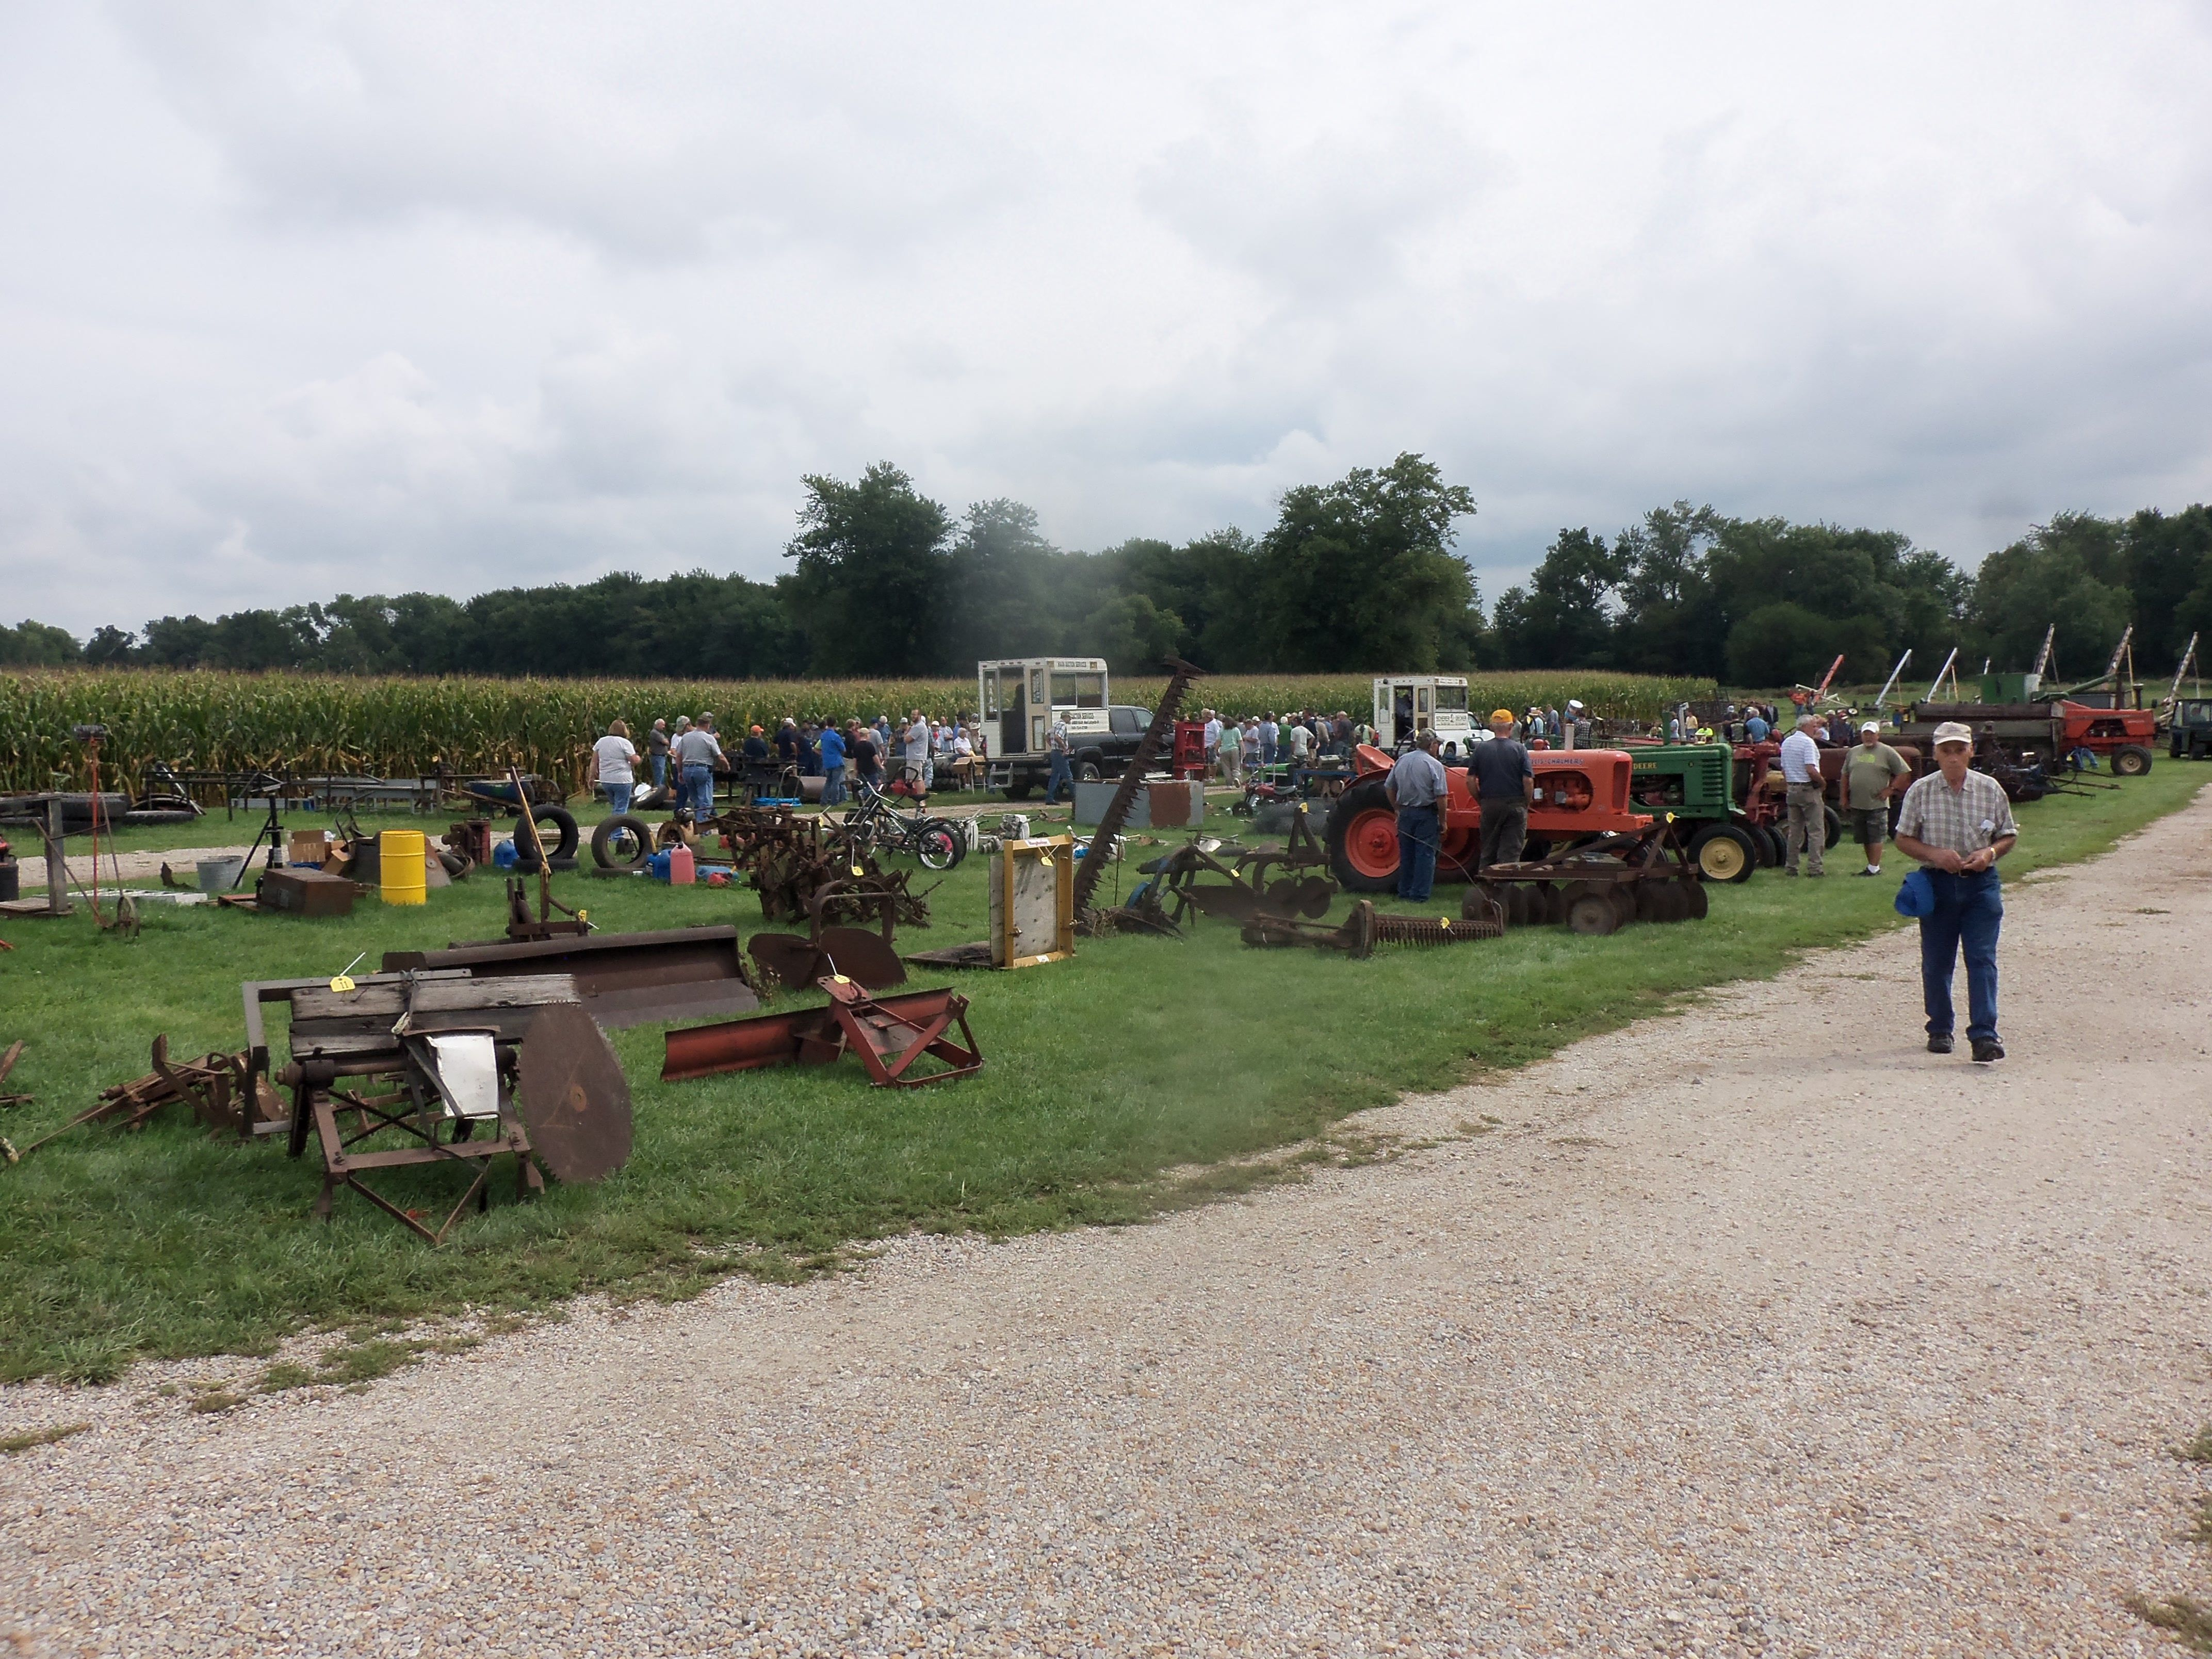 Another lineup of farm equipment for auction